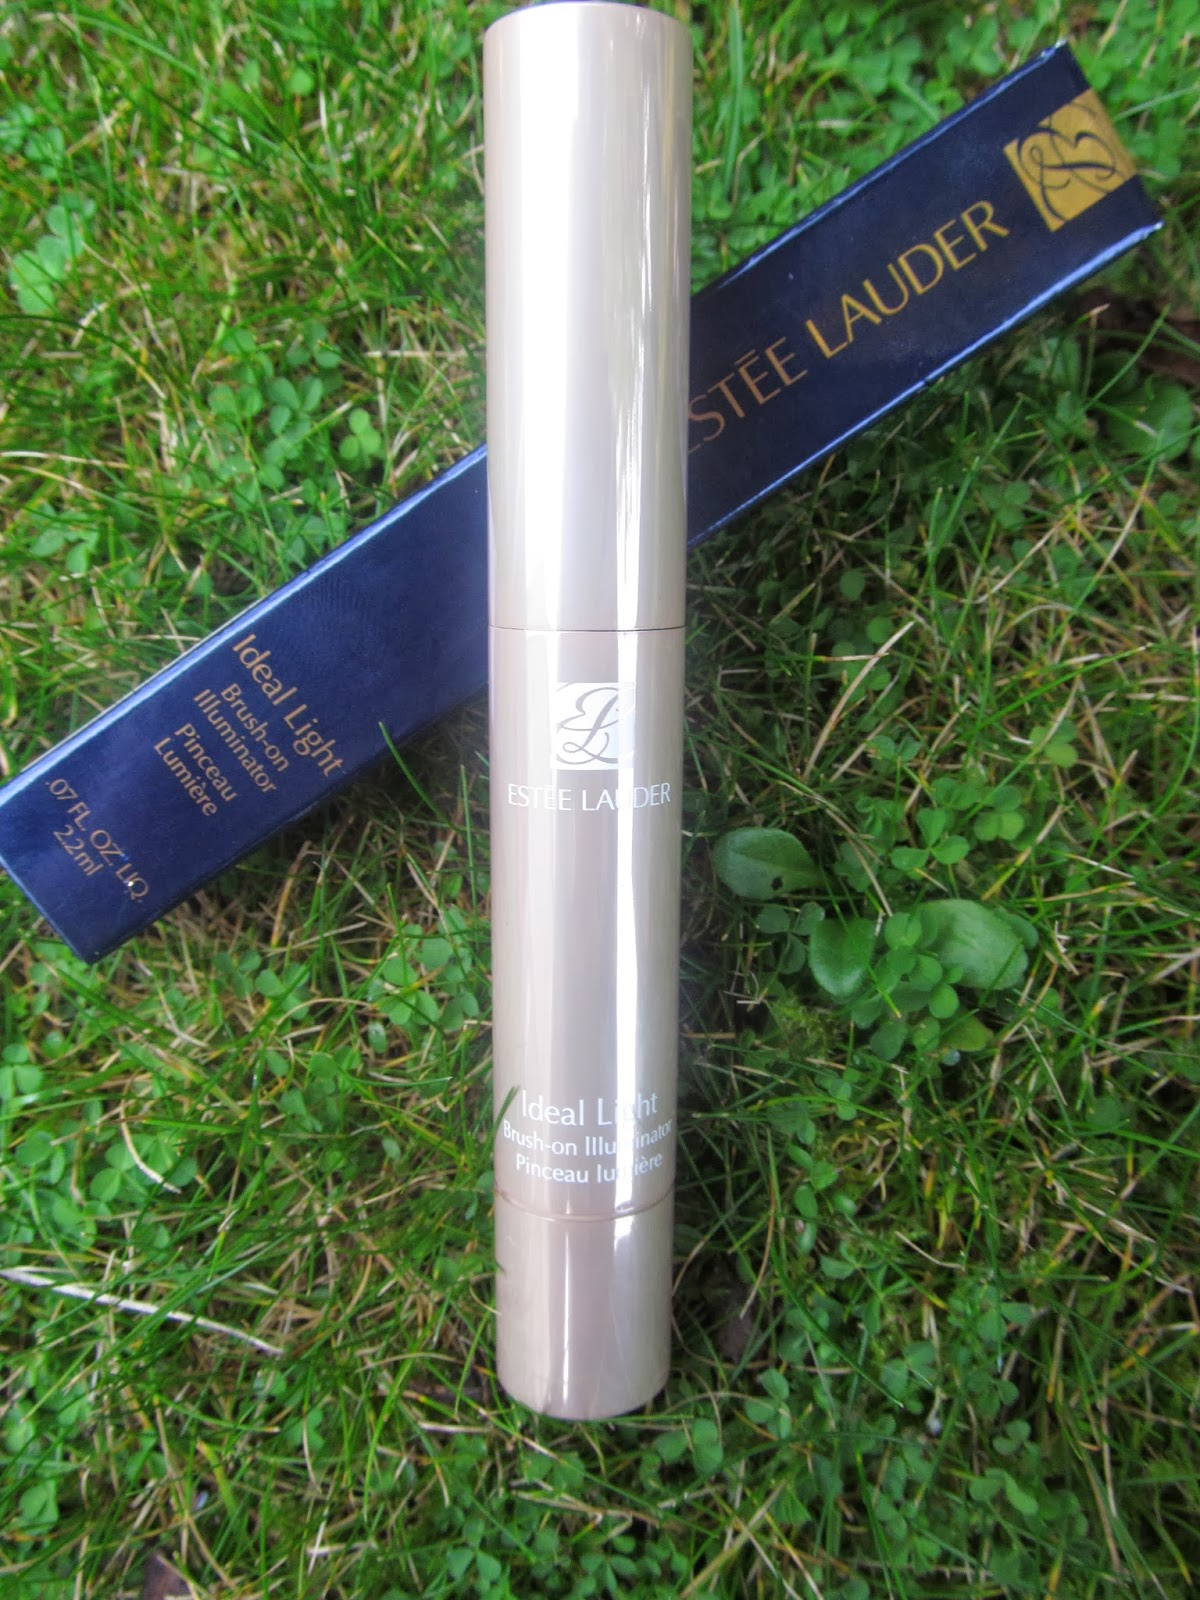 Beautyknight Estee Lauder Ideal Light Brush On